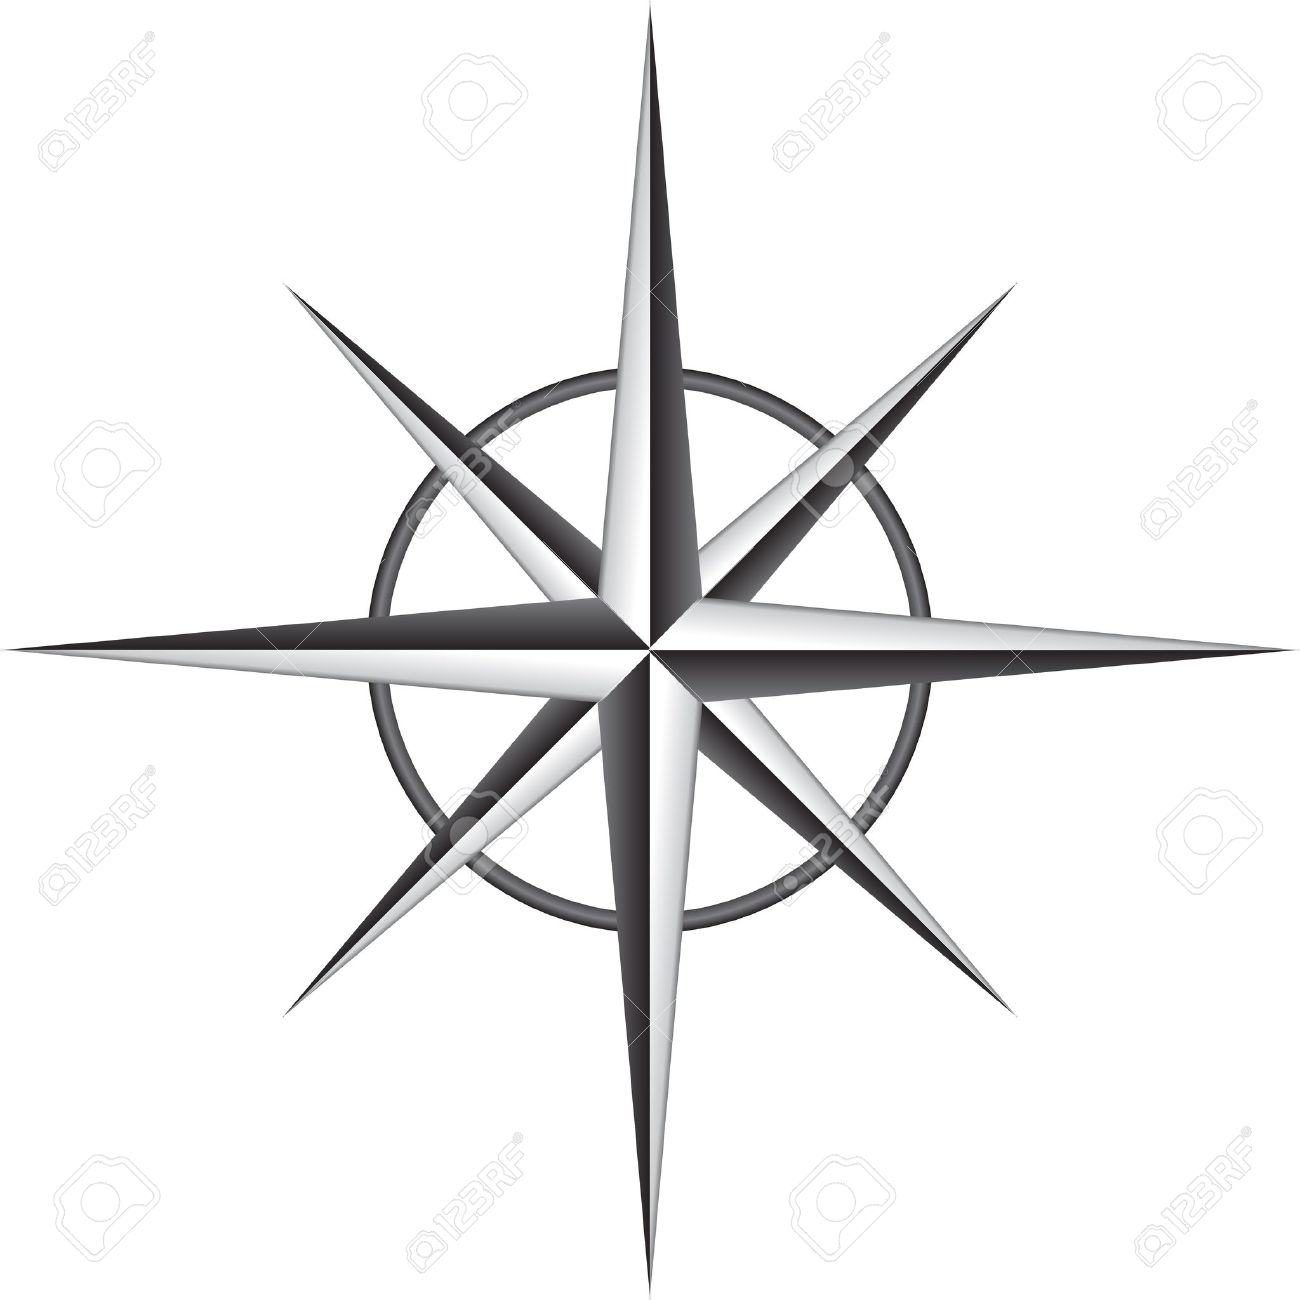 1300x1300 Illustration Of Compass Rose Royalty Free Cliparts, Vectors,